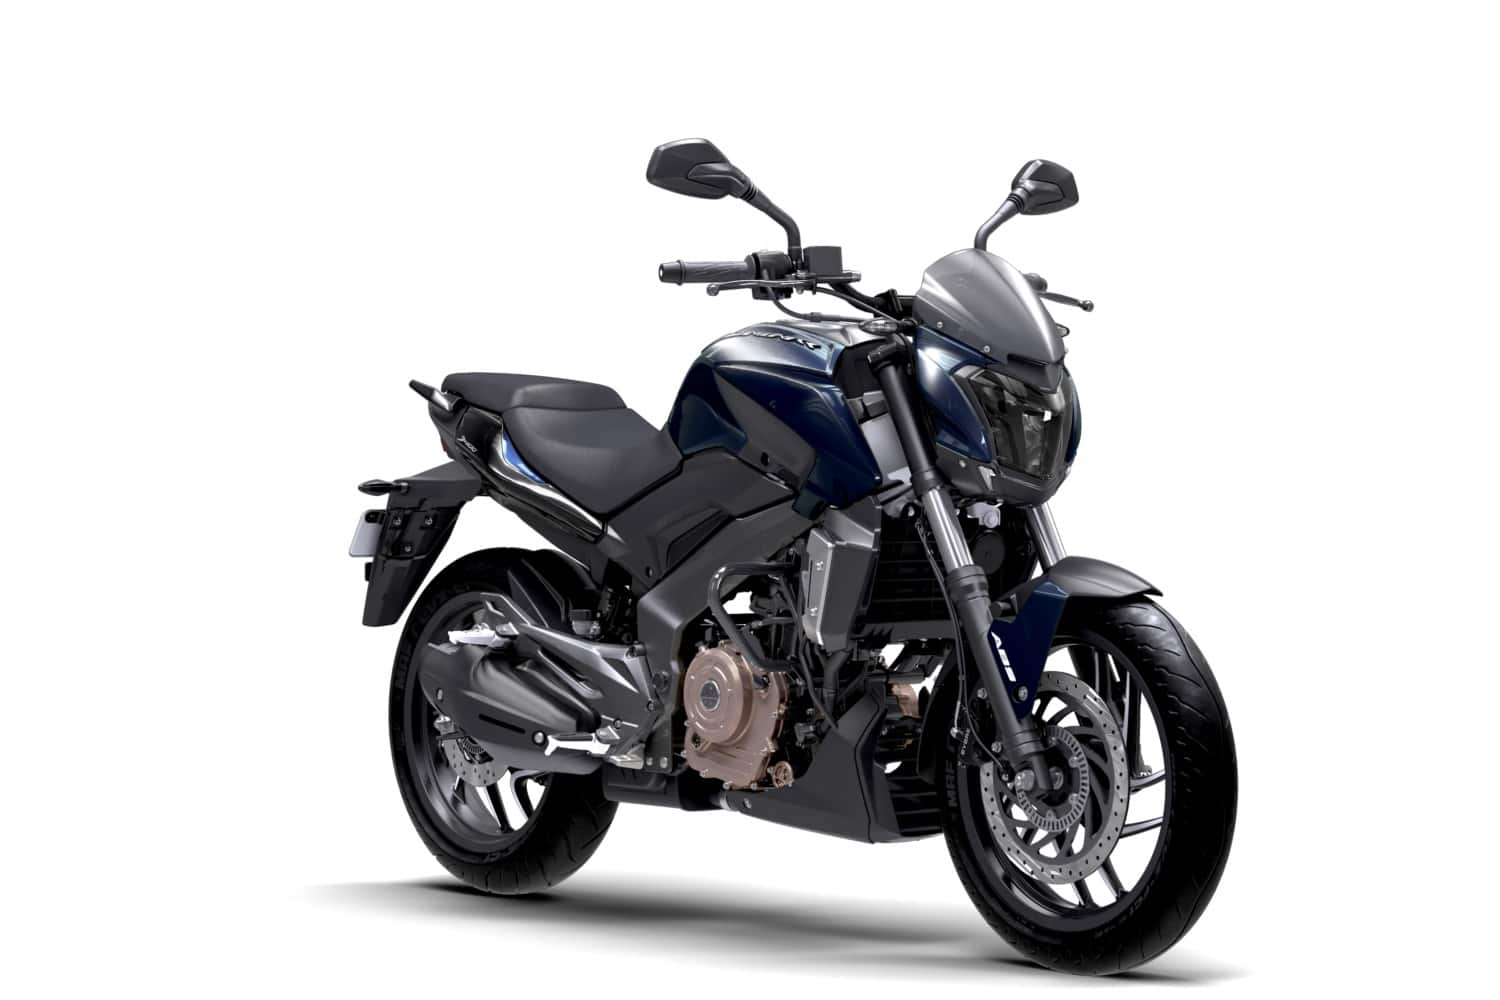 Bajaj Dominar 400 records lowest ever sales; We tell you why!